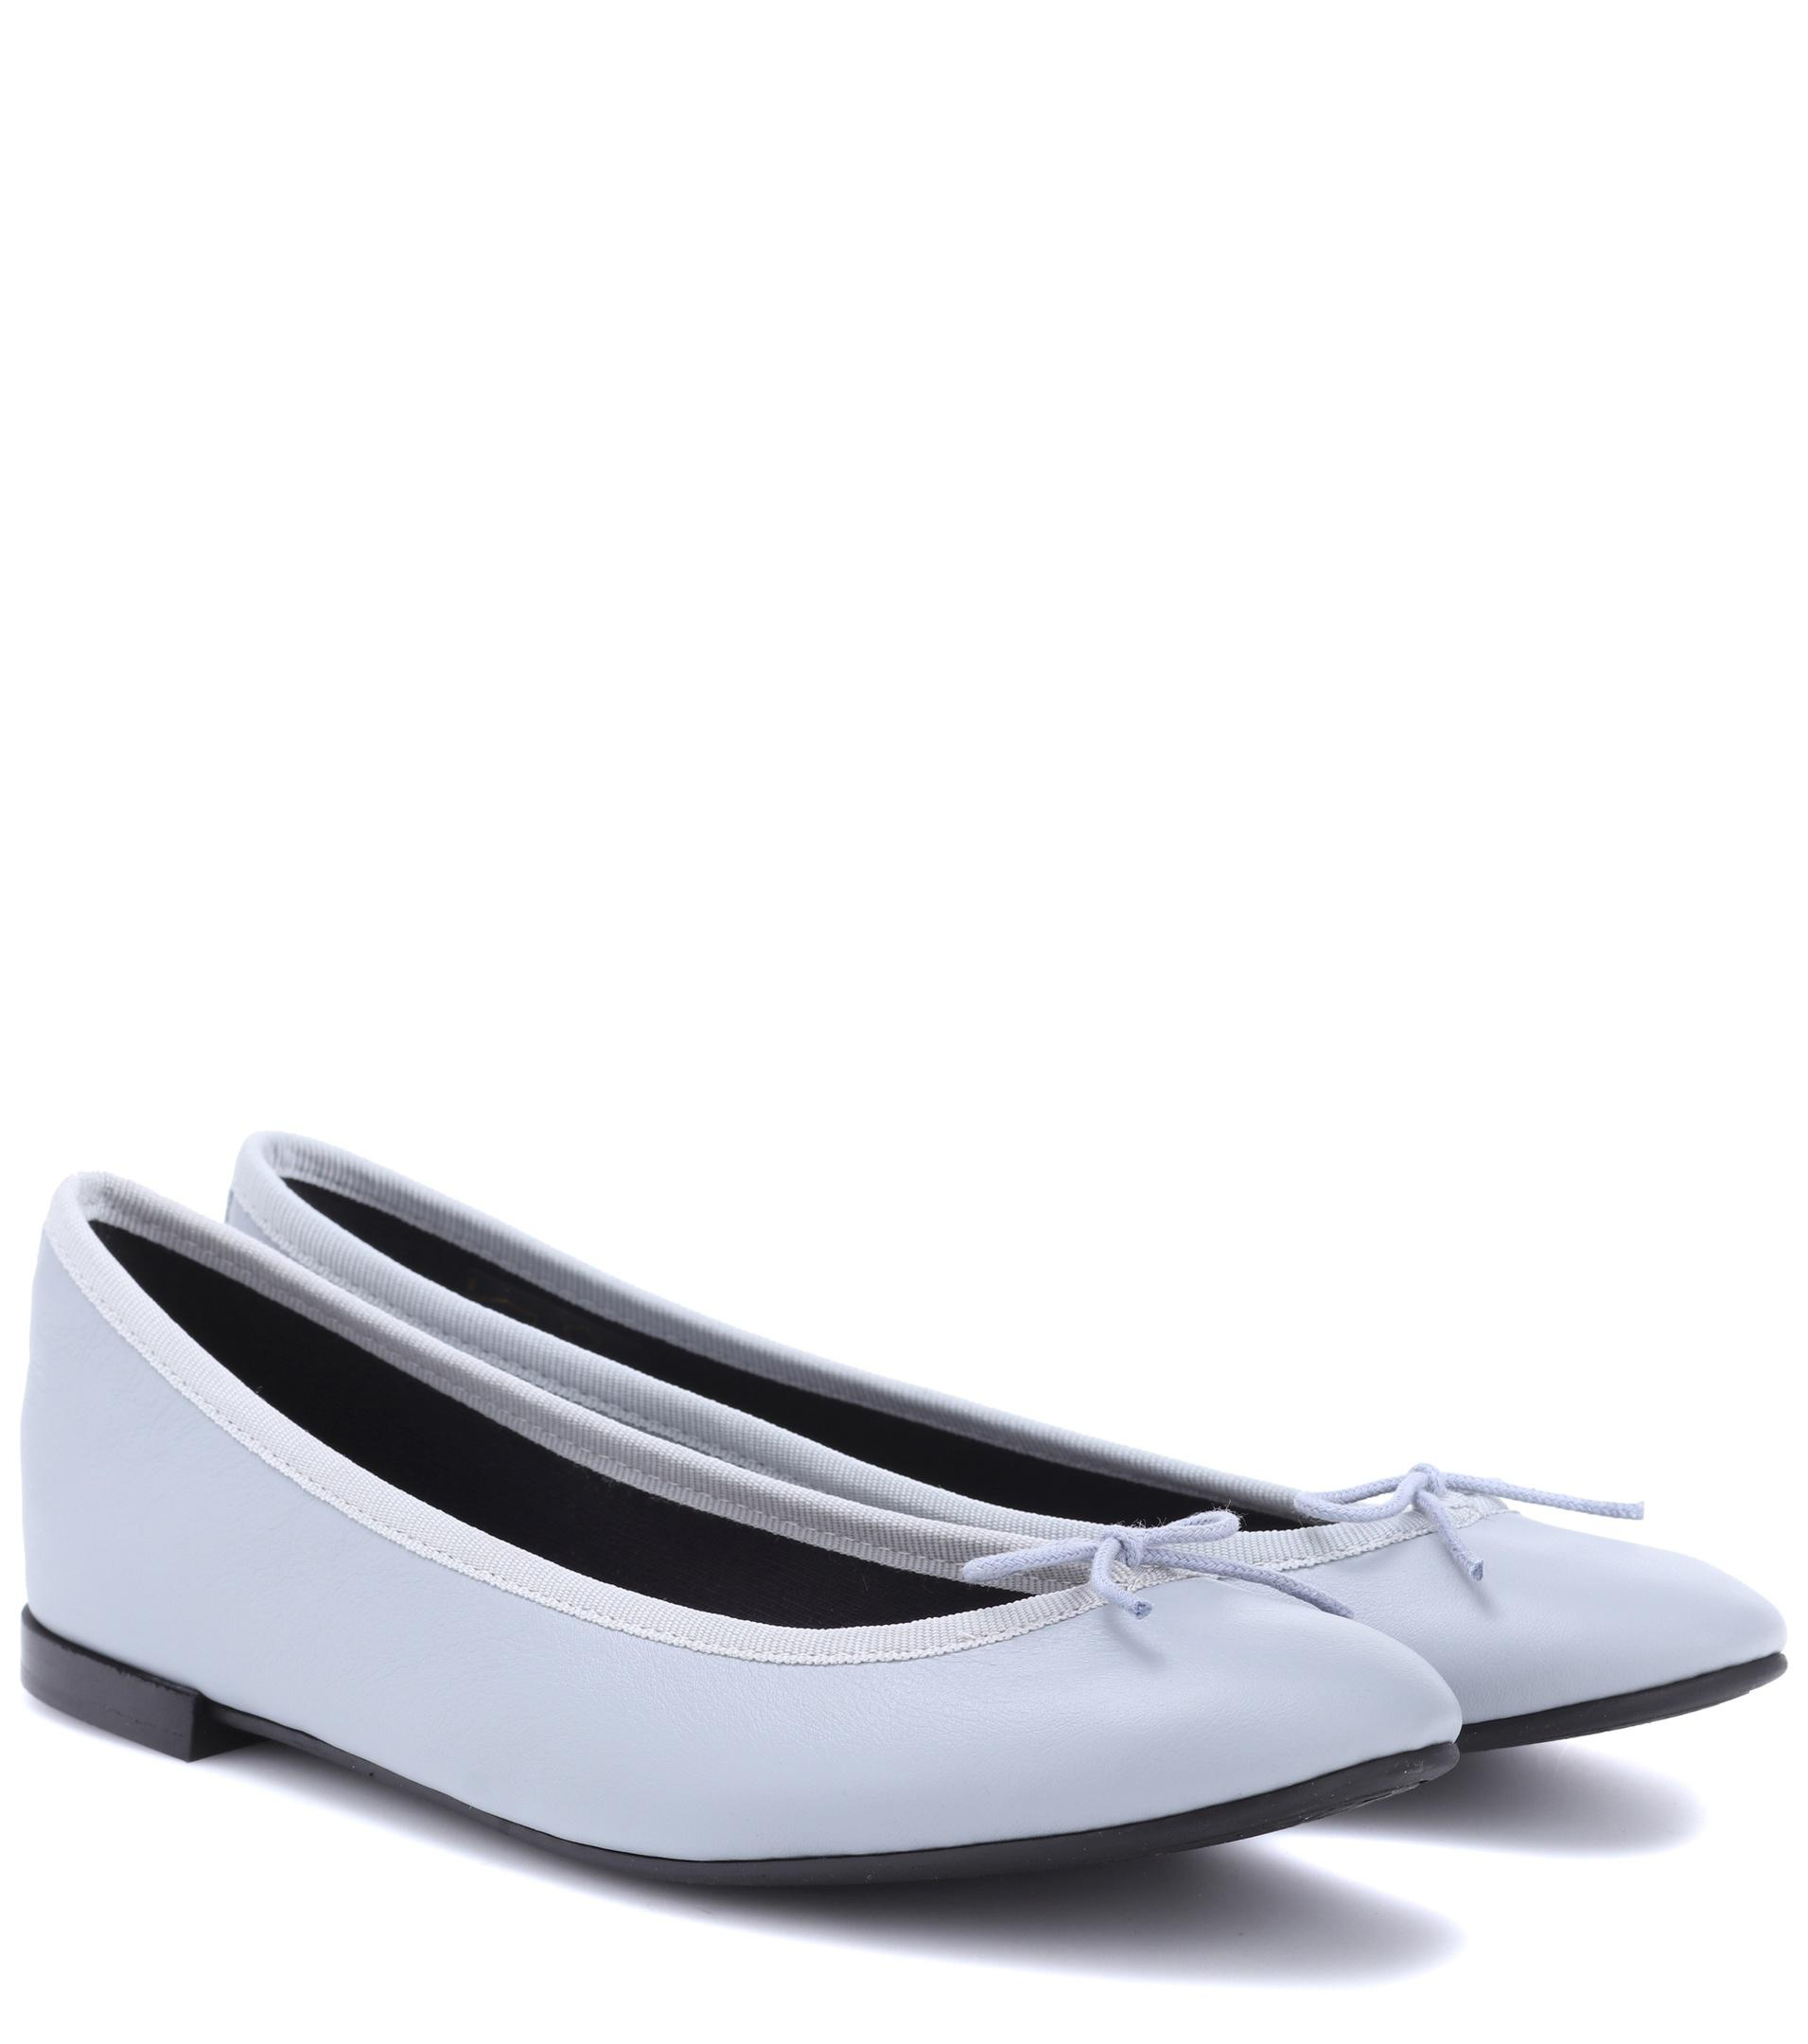 Repetto Lili leather ballerinas Shopping Online Cheap Online x2Bvzv